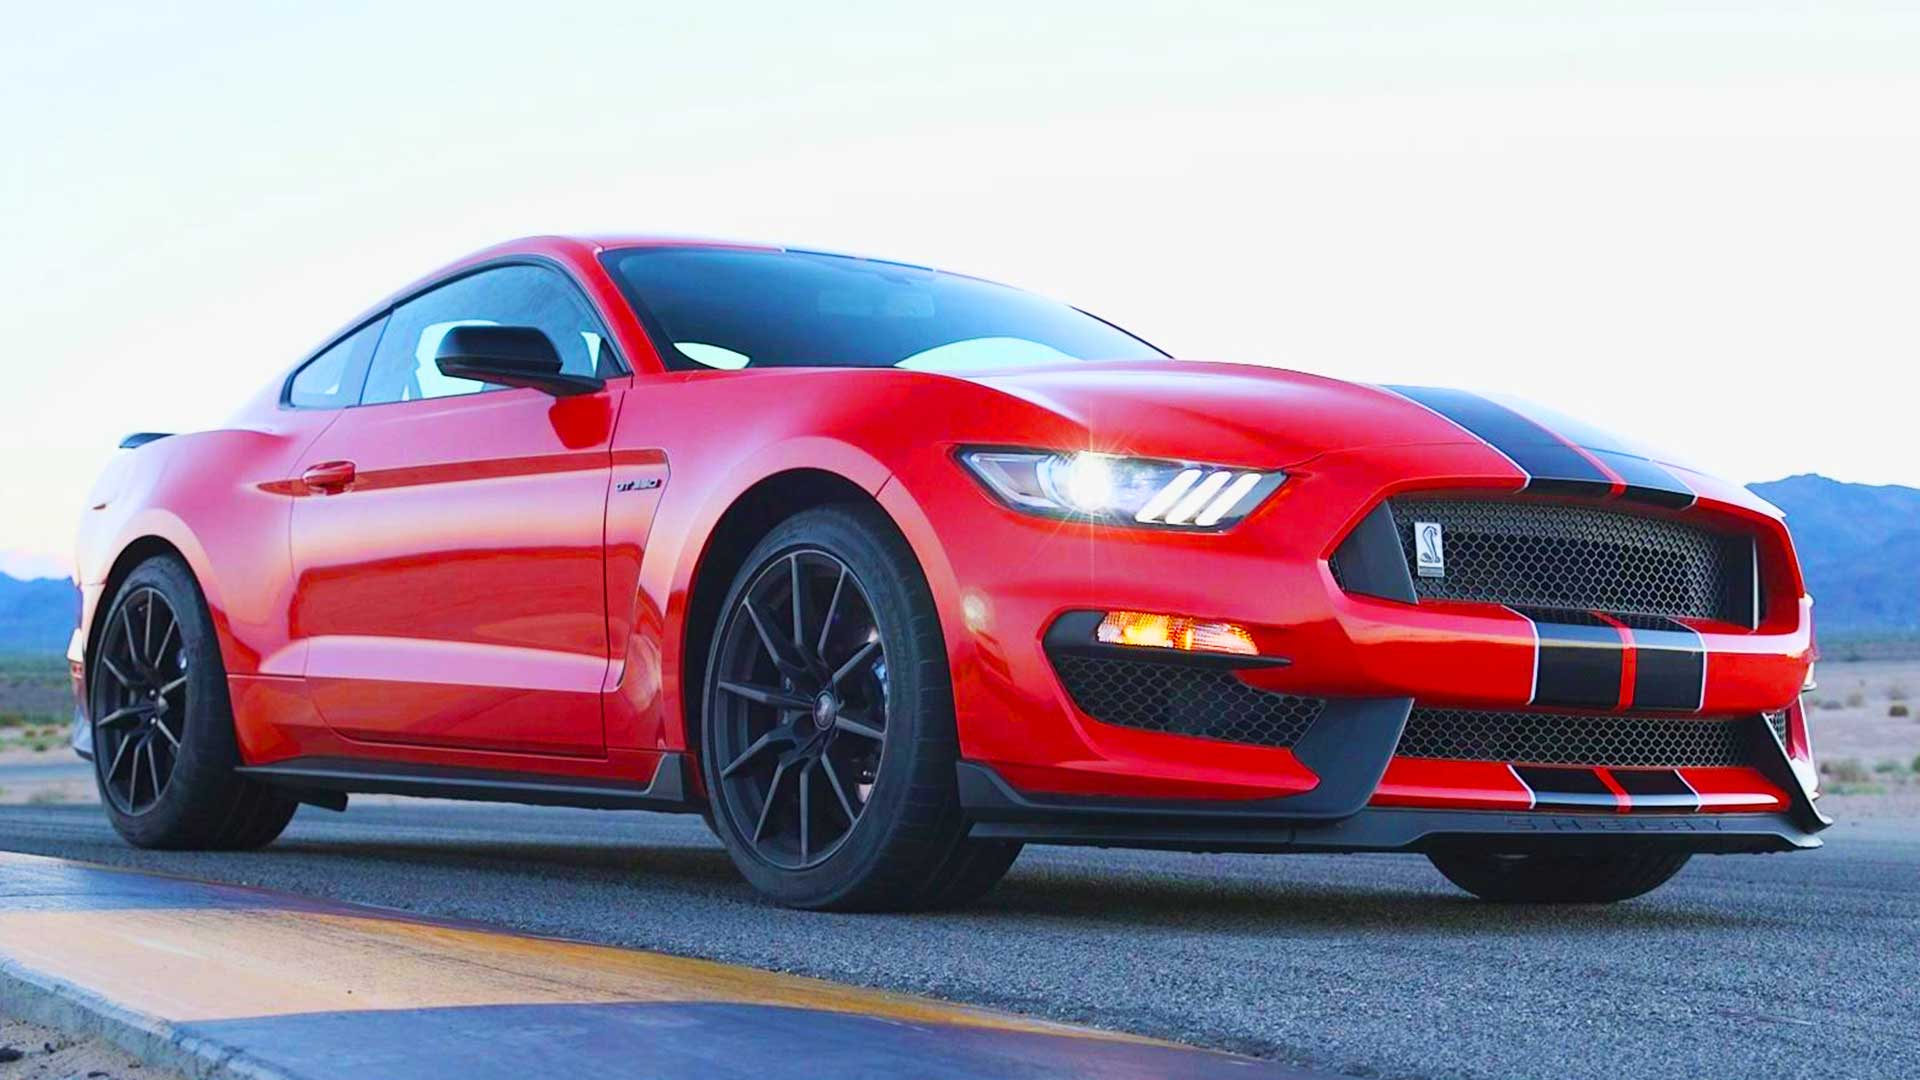 007 10 best new videos on motor trend ondemand in november ignition